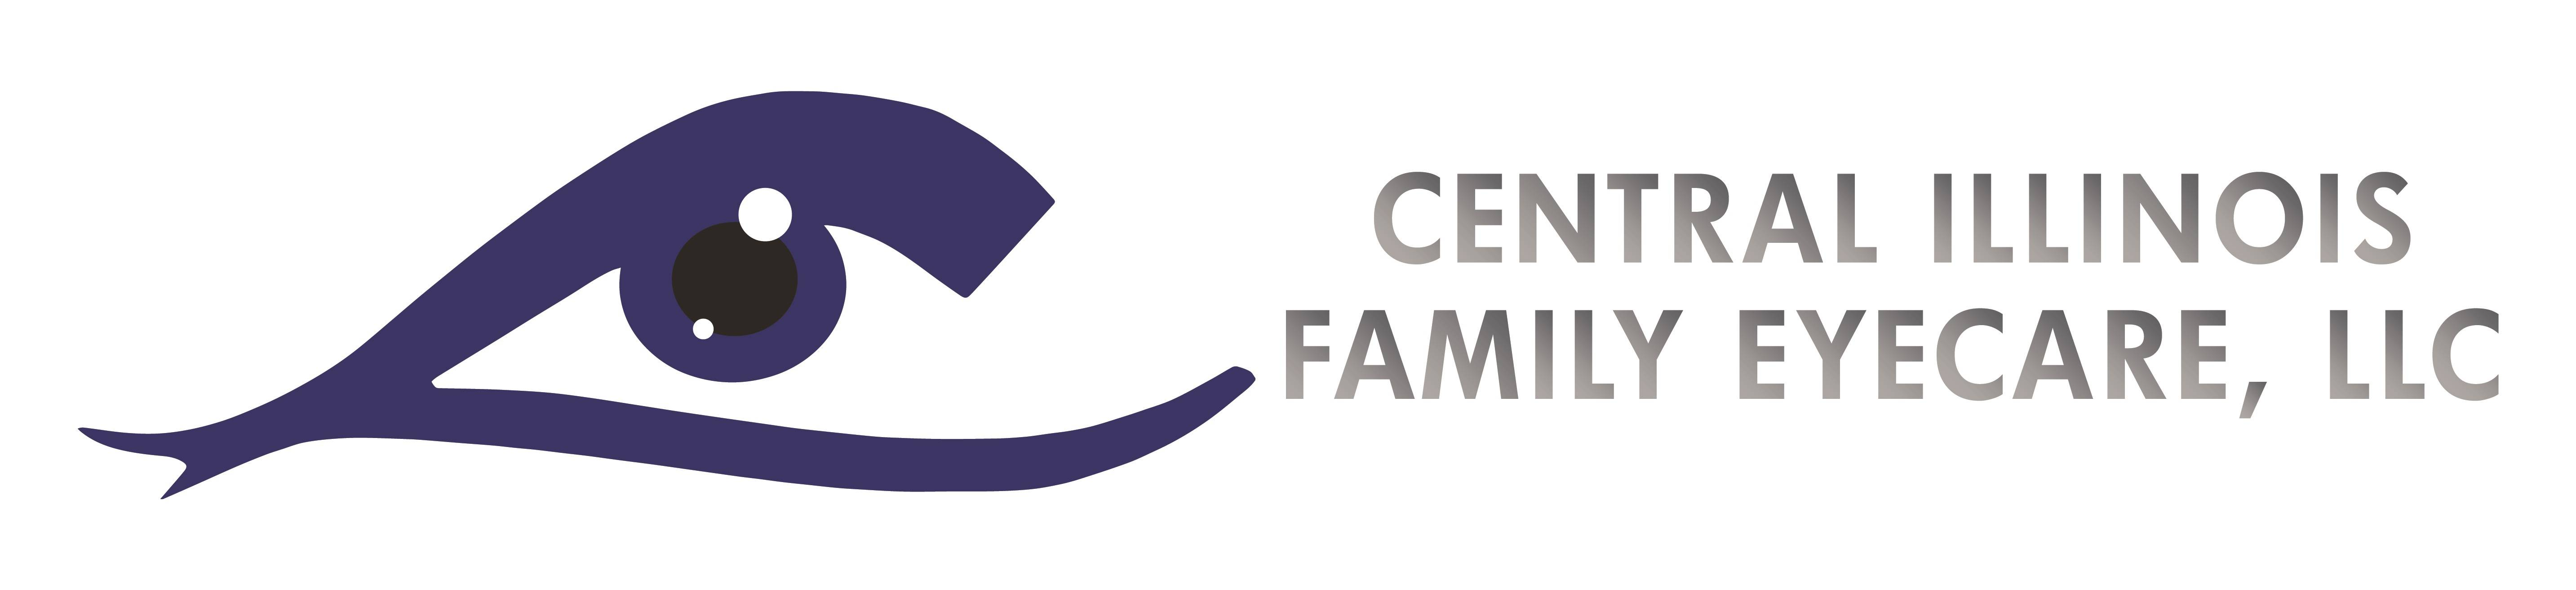 Central Illinois Family Eyecare